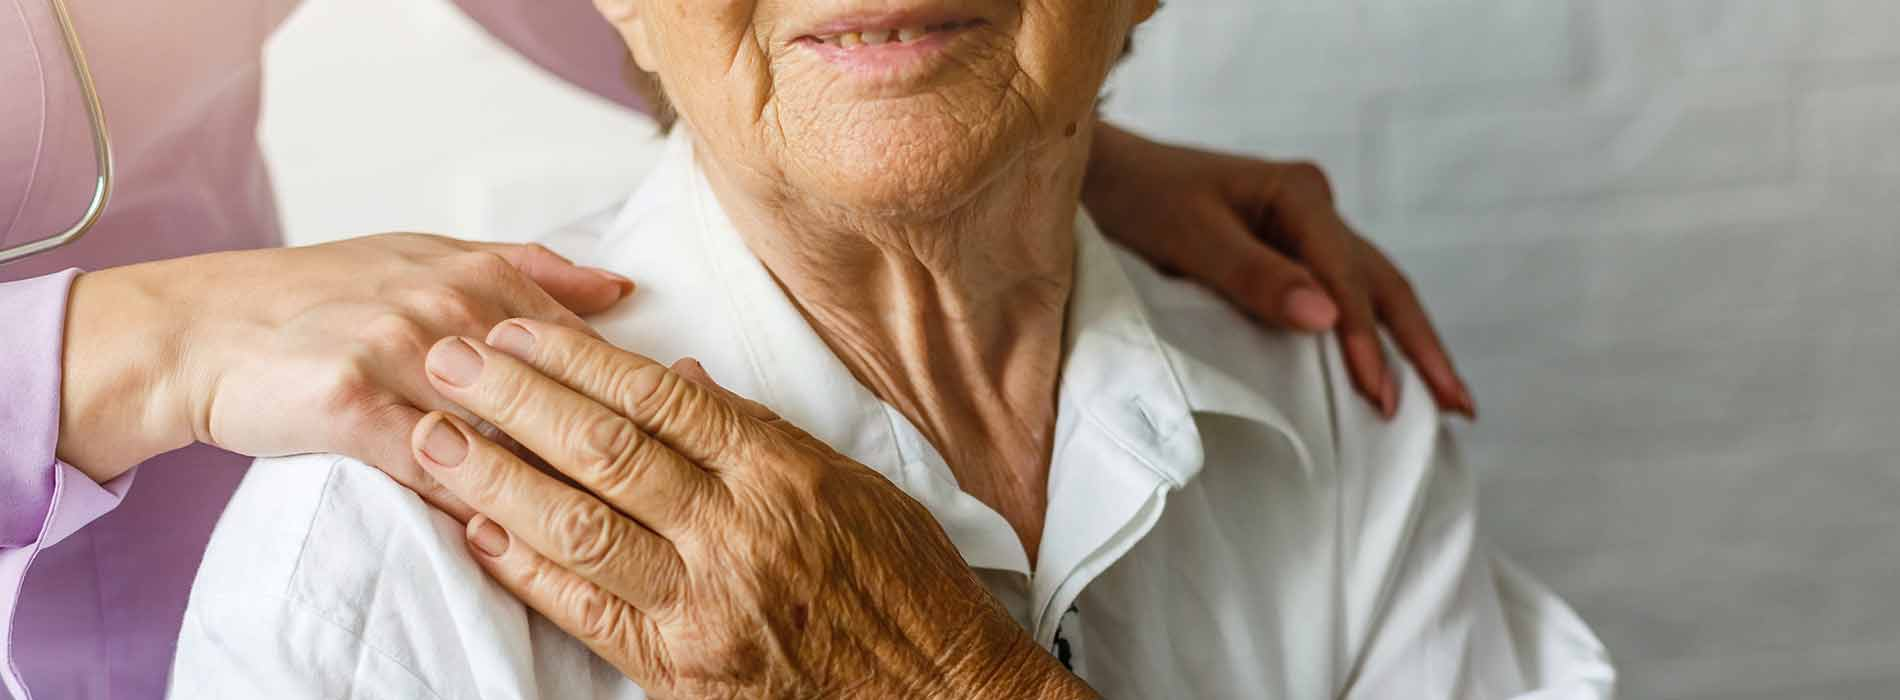 4 Things You Need To Do for a Dying Loved One